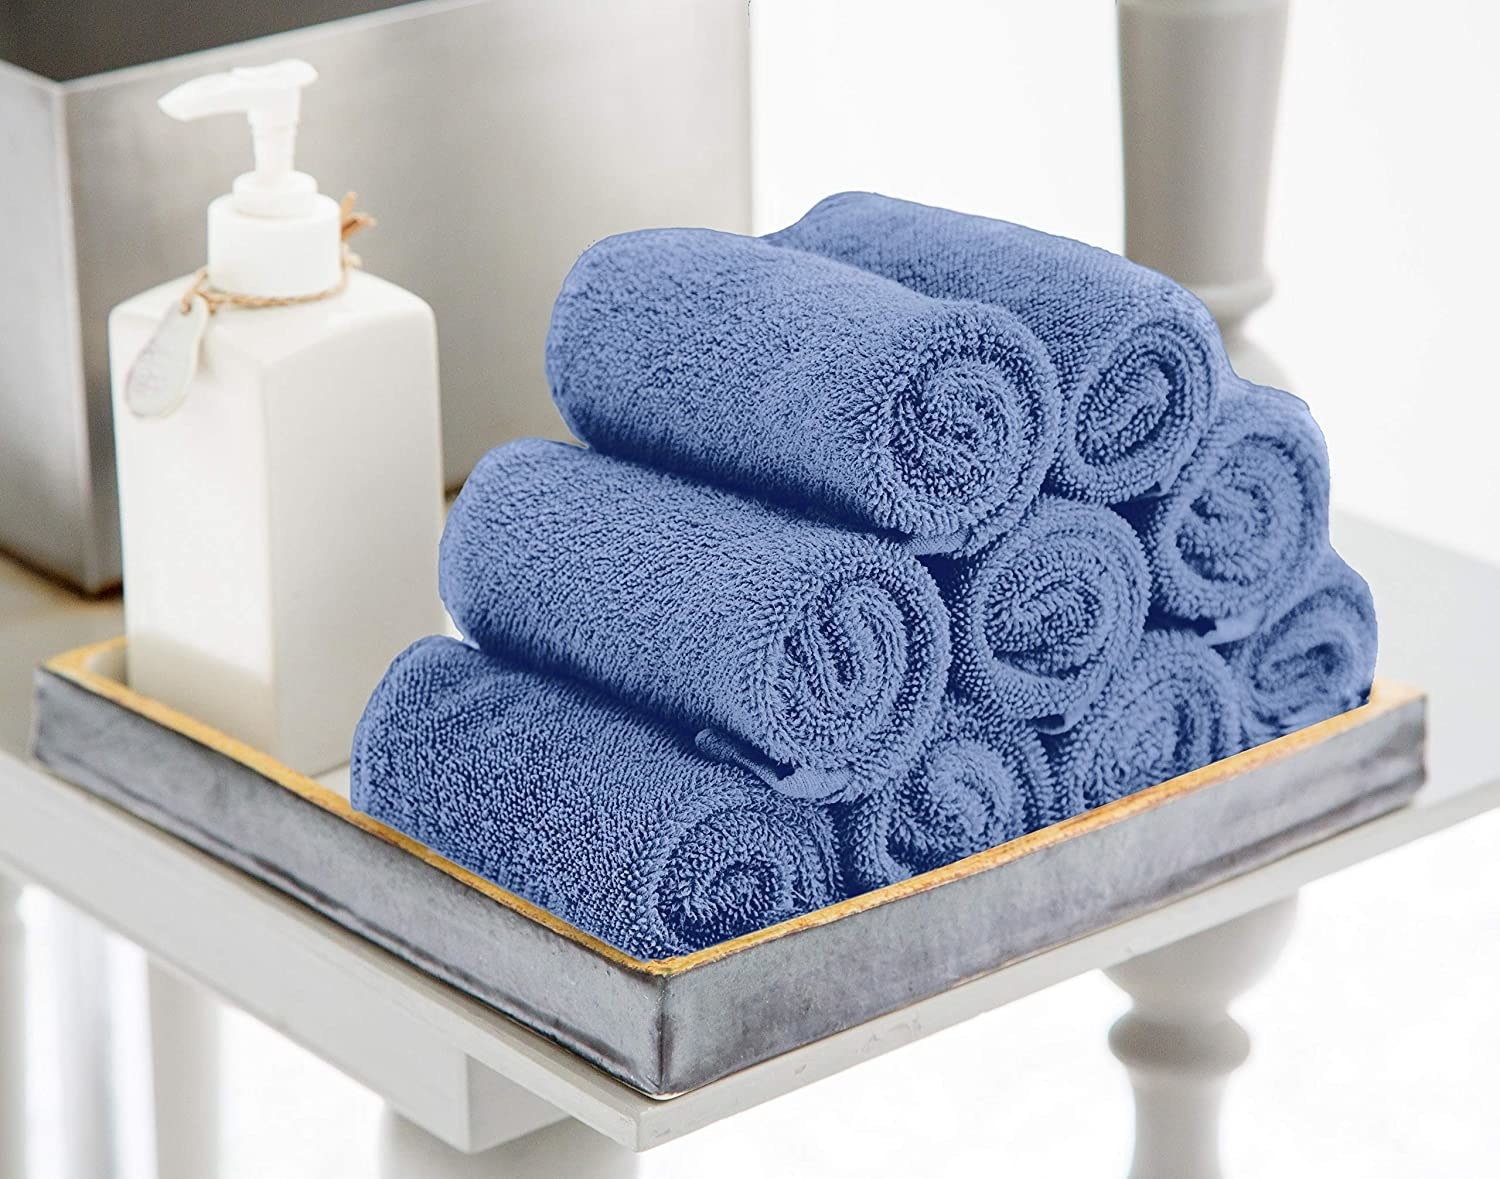 The washcloths in blue